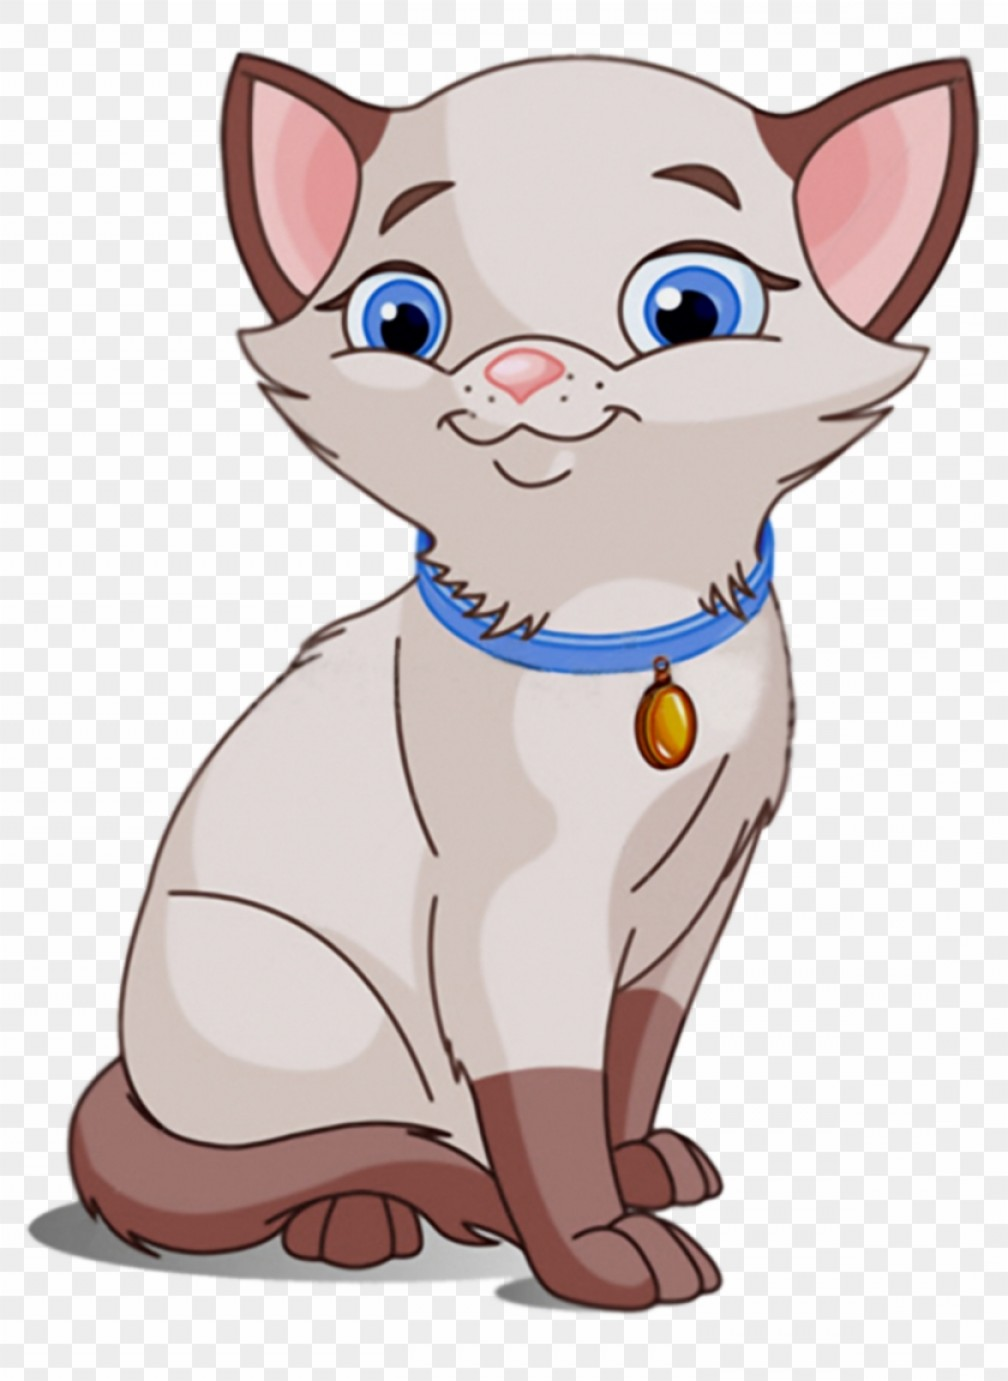 Siamese Cat Vector Transparent Background: Mimknkdksiamese Cat Clipart Cute Cat Vector Free